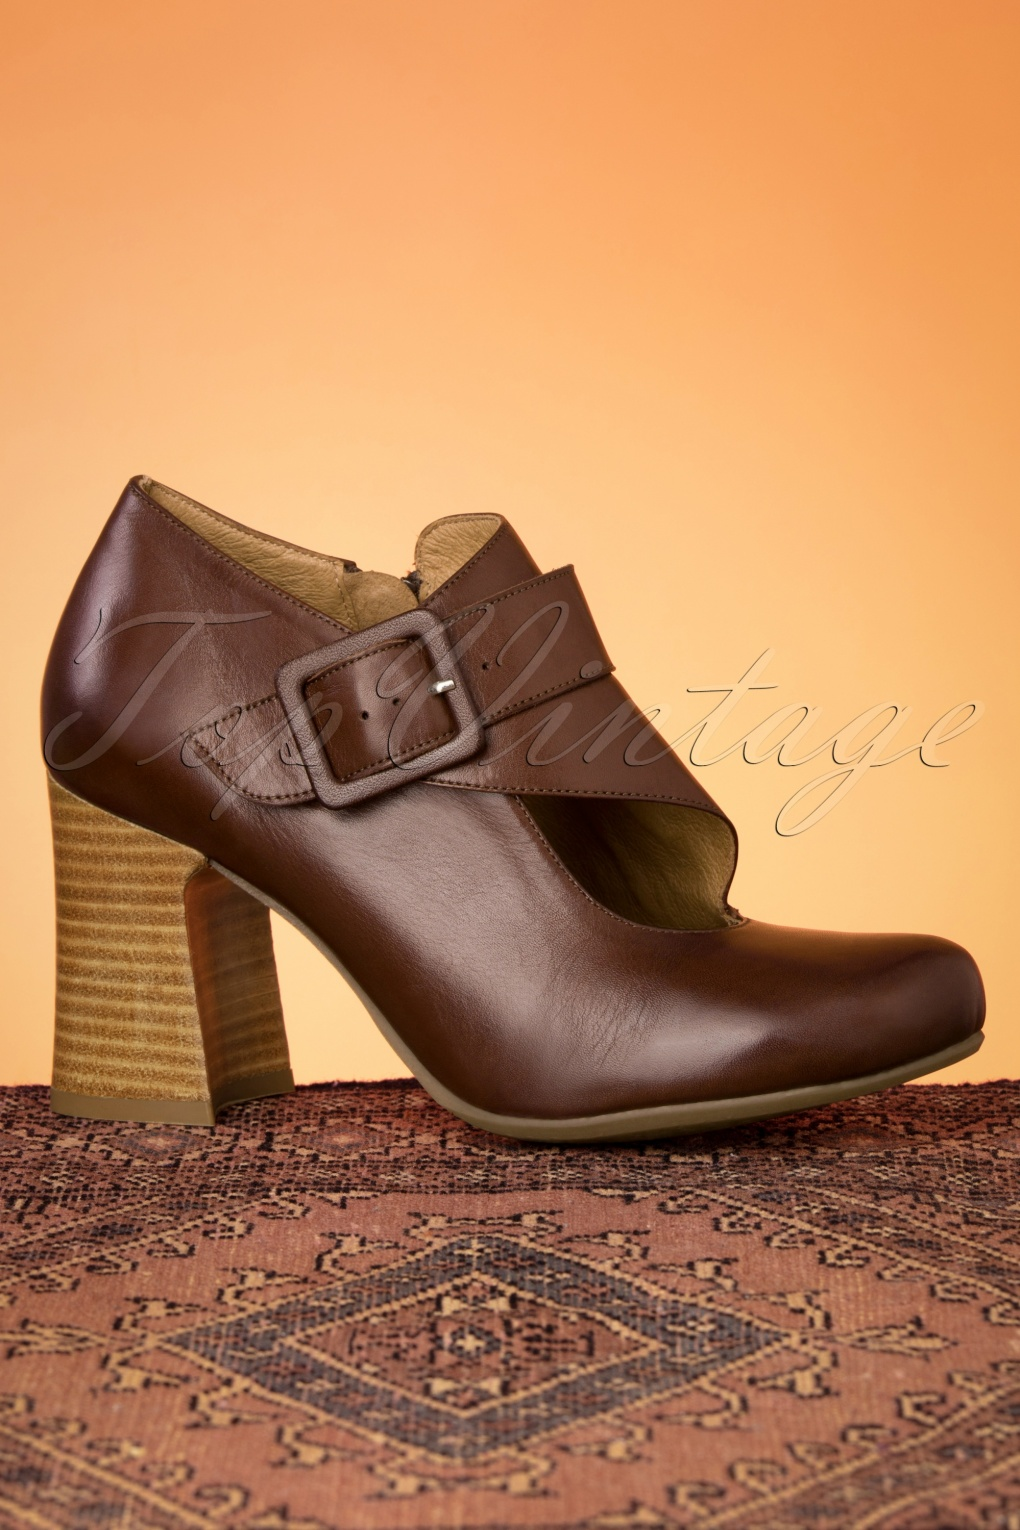 1960s Style Dresses, Clothing, Shoes UK 60s Knight Leather Shoe Booties in Brown £136.70 AT vintagedancer.com